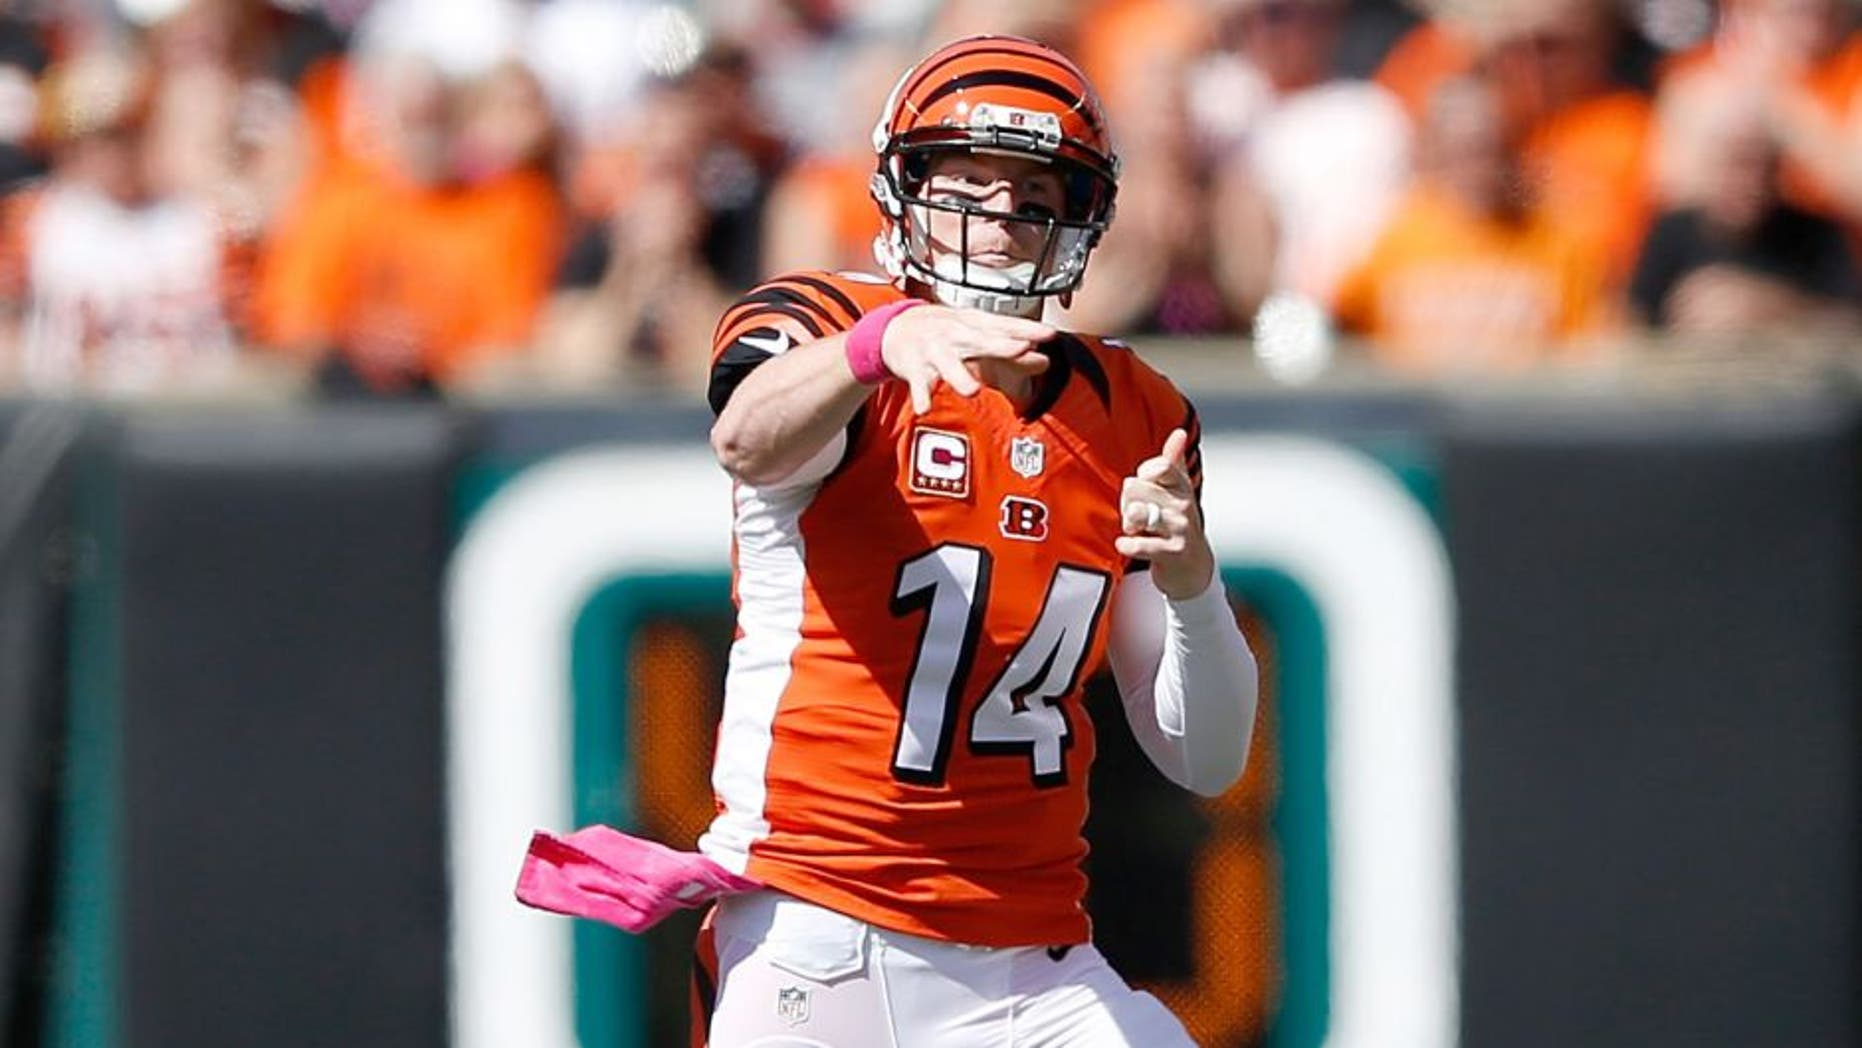 CINCINNATI, OH - OCTOBER 4: Andy Dalton #14 of the Cincinnati Bengals throws a pass during the first quarter of the game against the Kansas City Chiefs at Paul Brown Stadium on October 4, 2015 in Cincinnati, Ohio. (Photo by Joe Robbins/Getty Images)